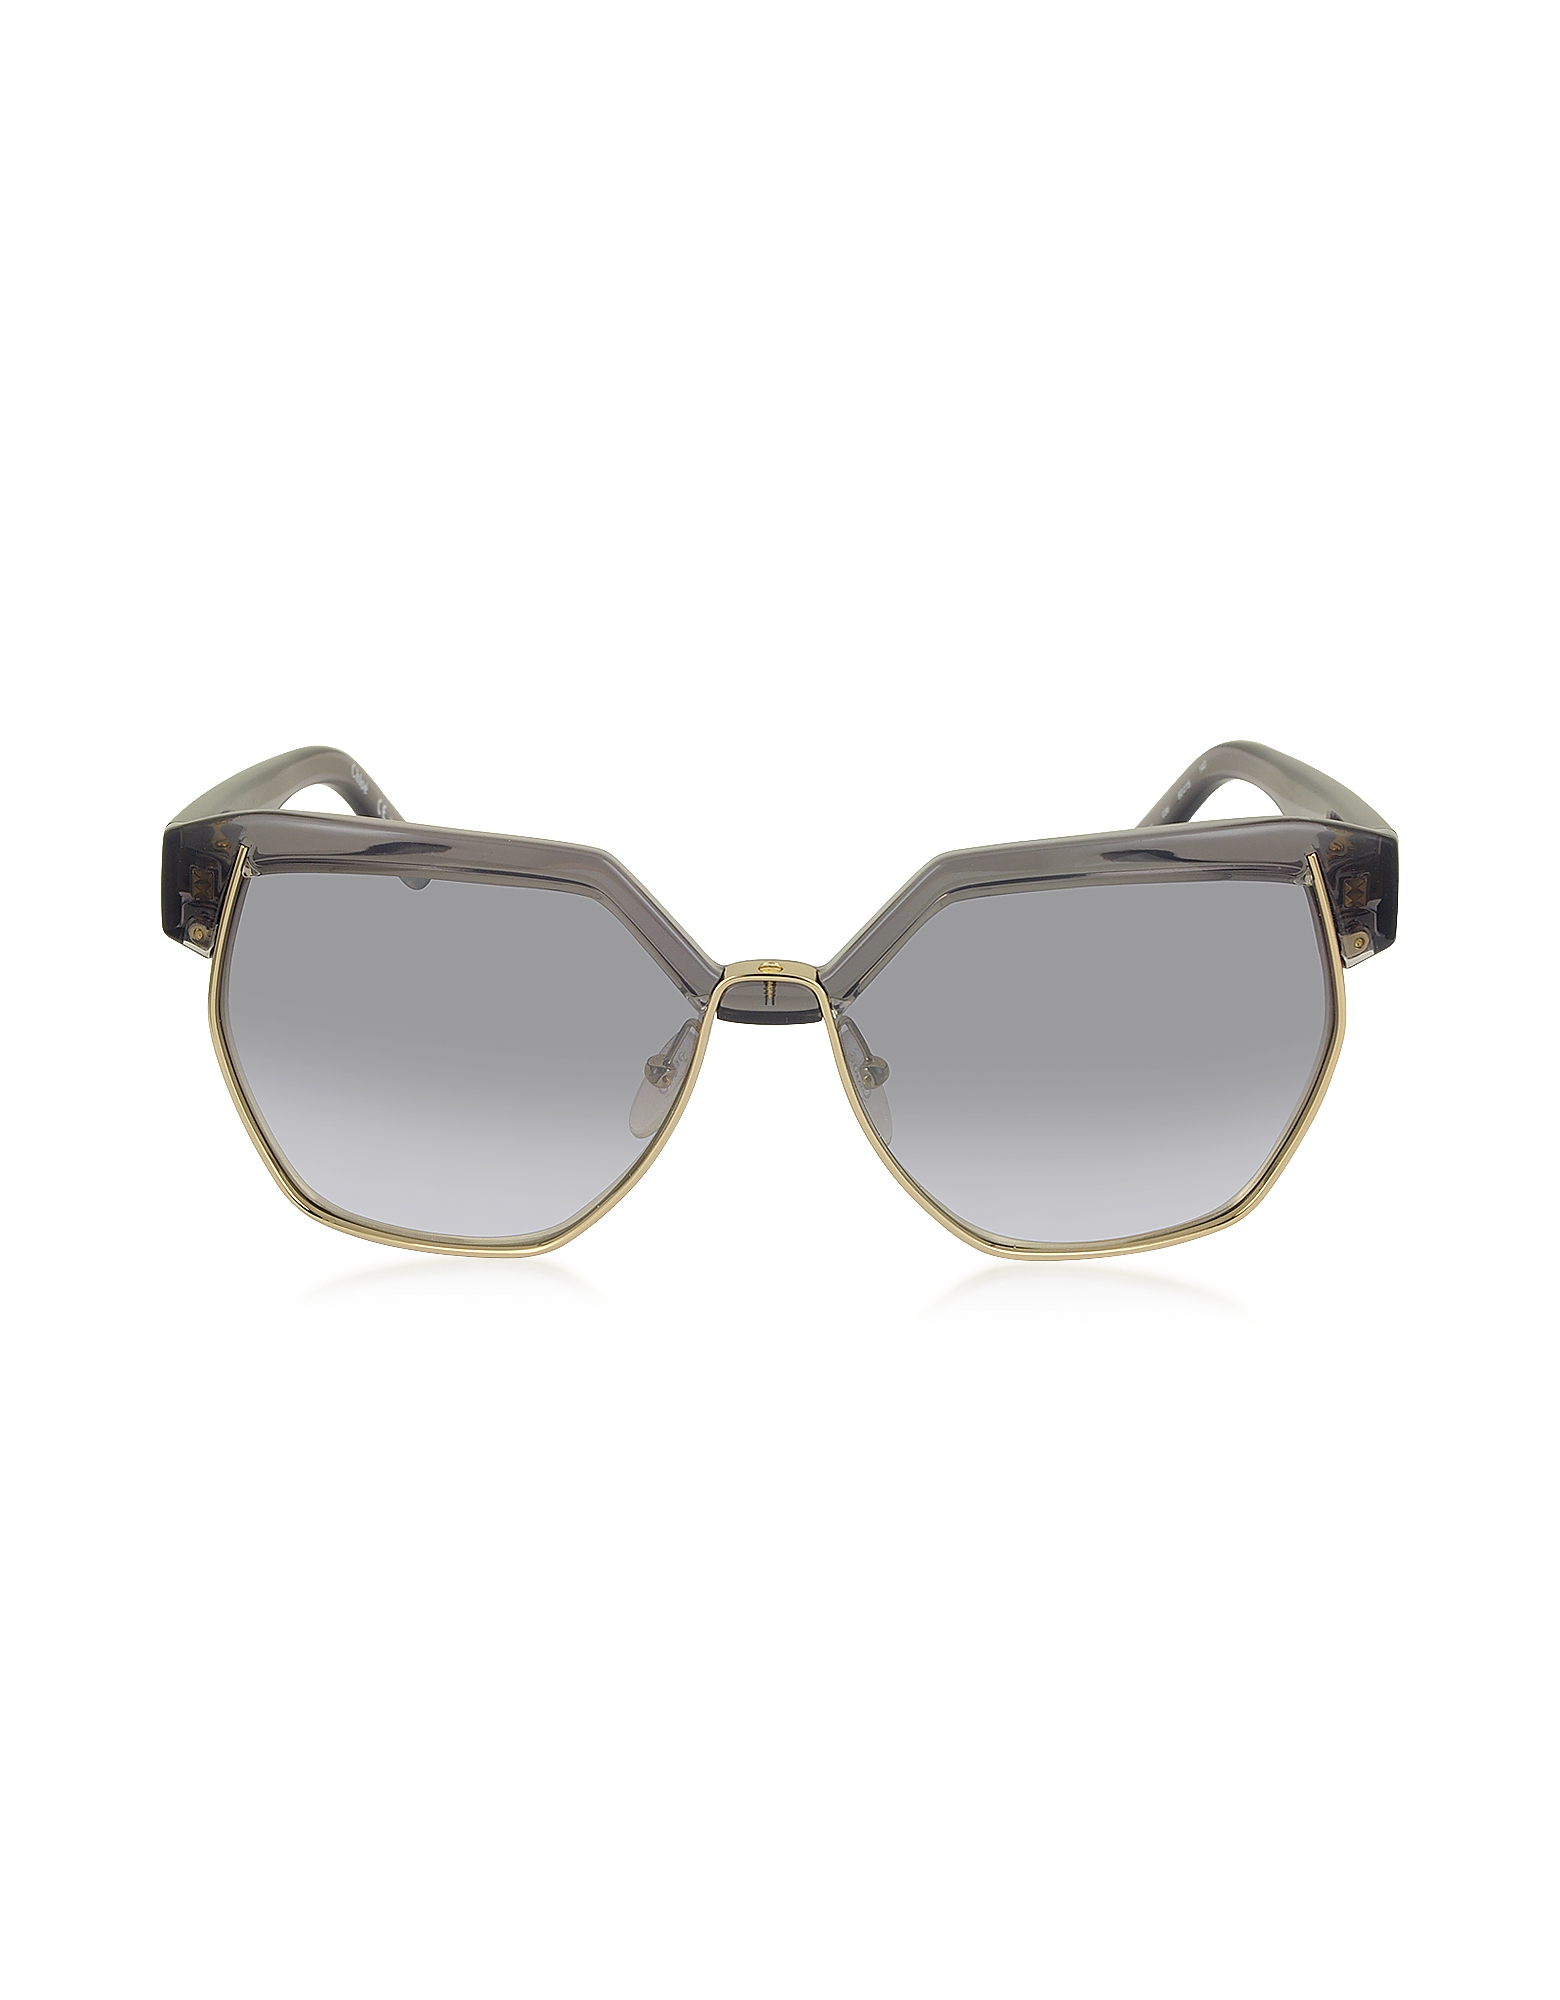 Chloe Sunglasses, DAFNE CE 665S 036 Gray Acetate and Gold Metal Geometric Women's Sunglasses